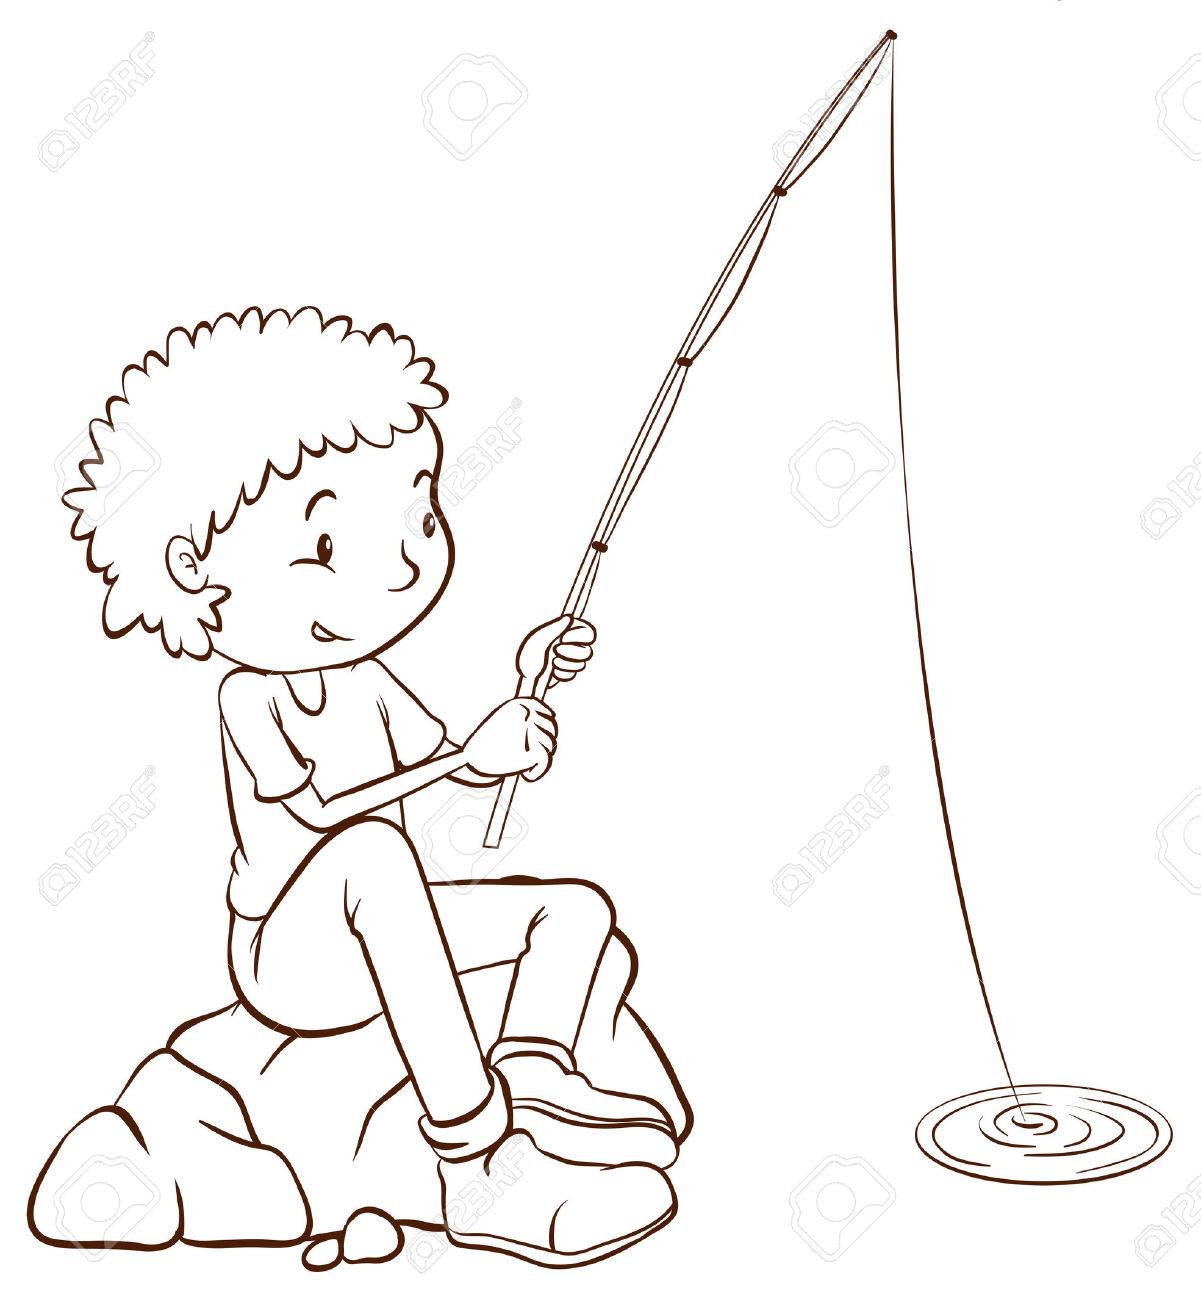 Illustration of a simple plain sketch of a boy fishing on a white...